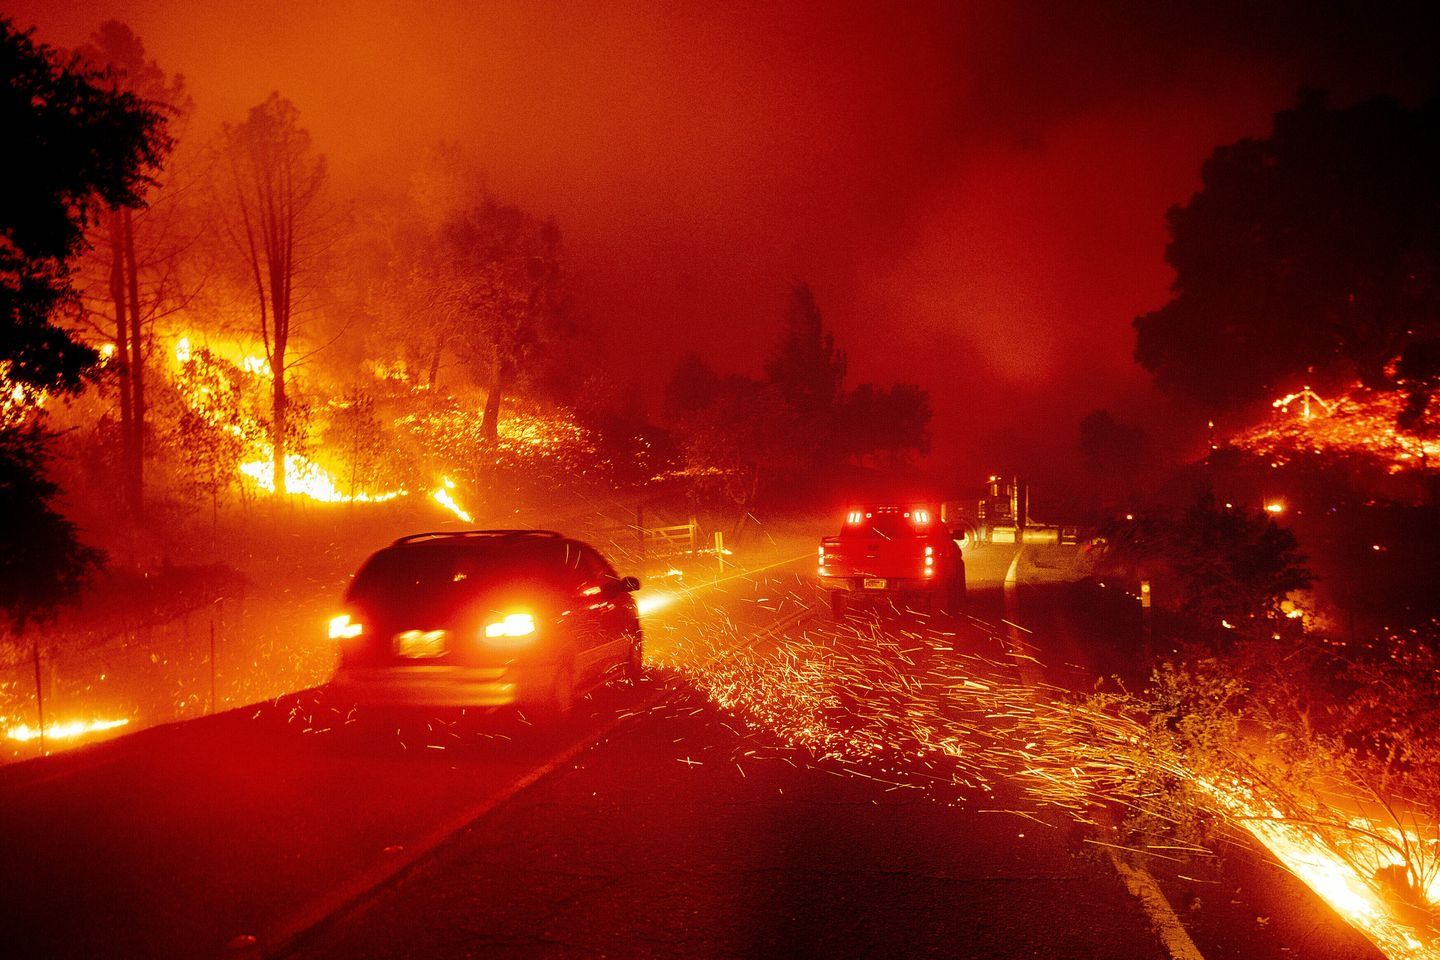 Pin By Hank On Disasters California Wildfires California Fire